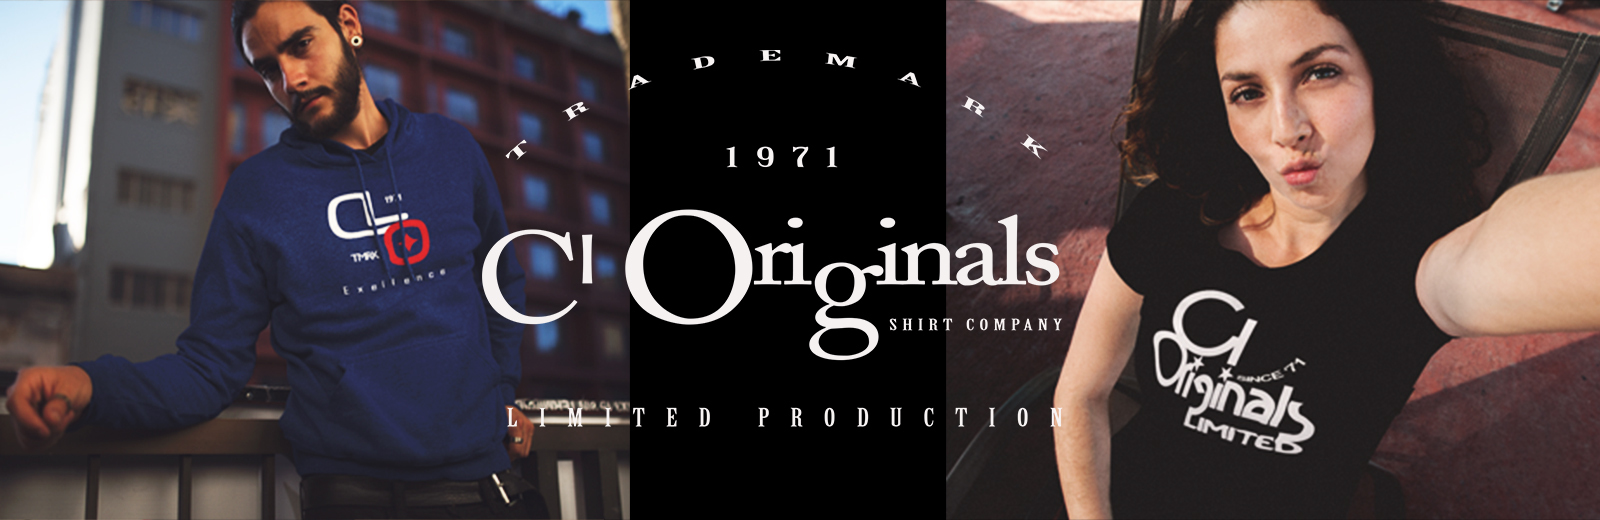 Cl Originals Store